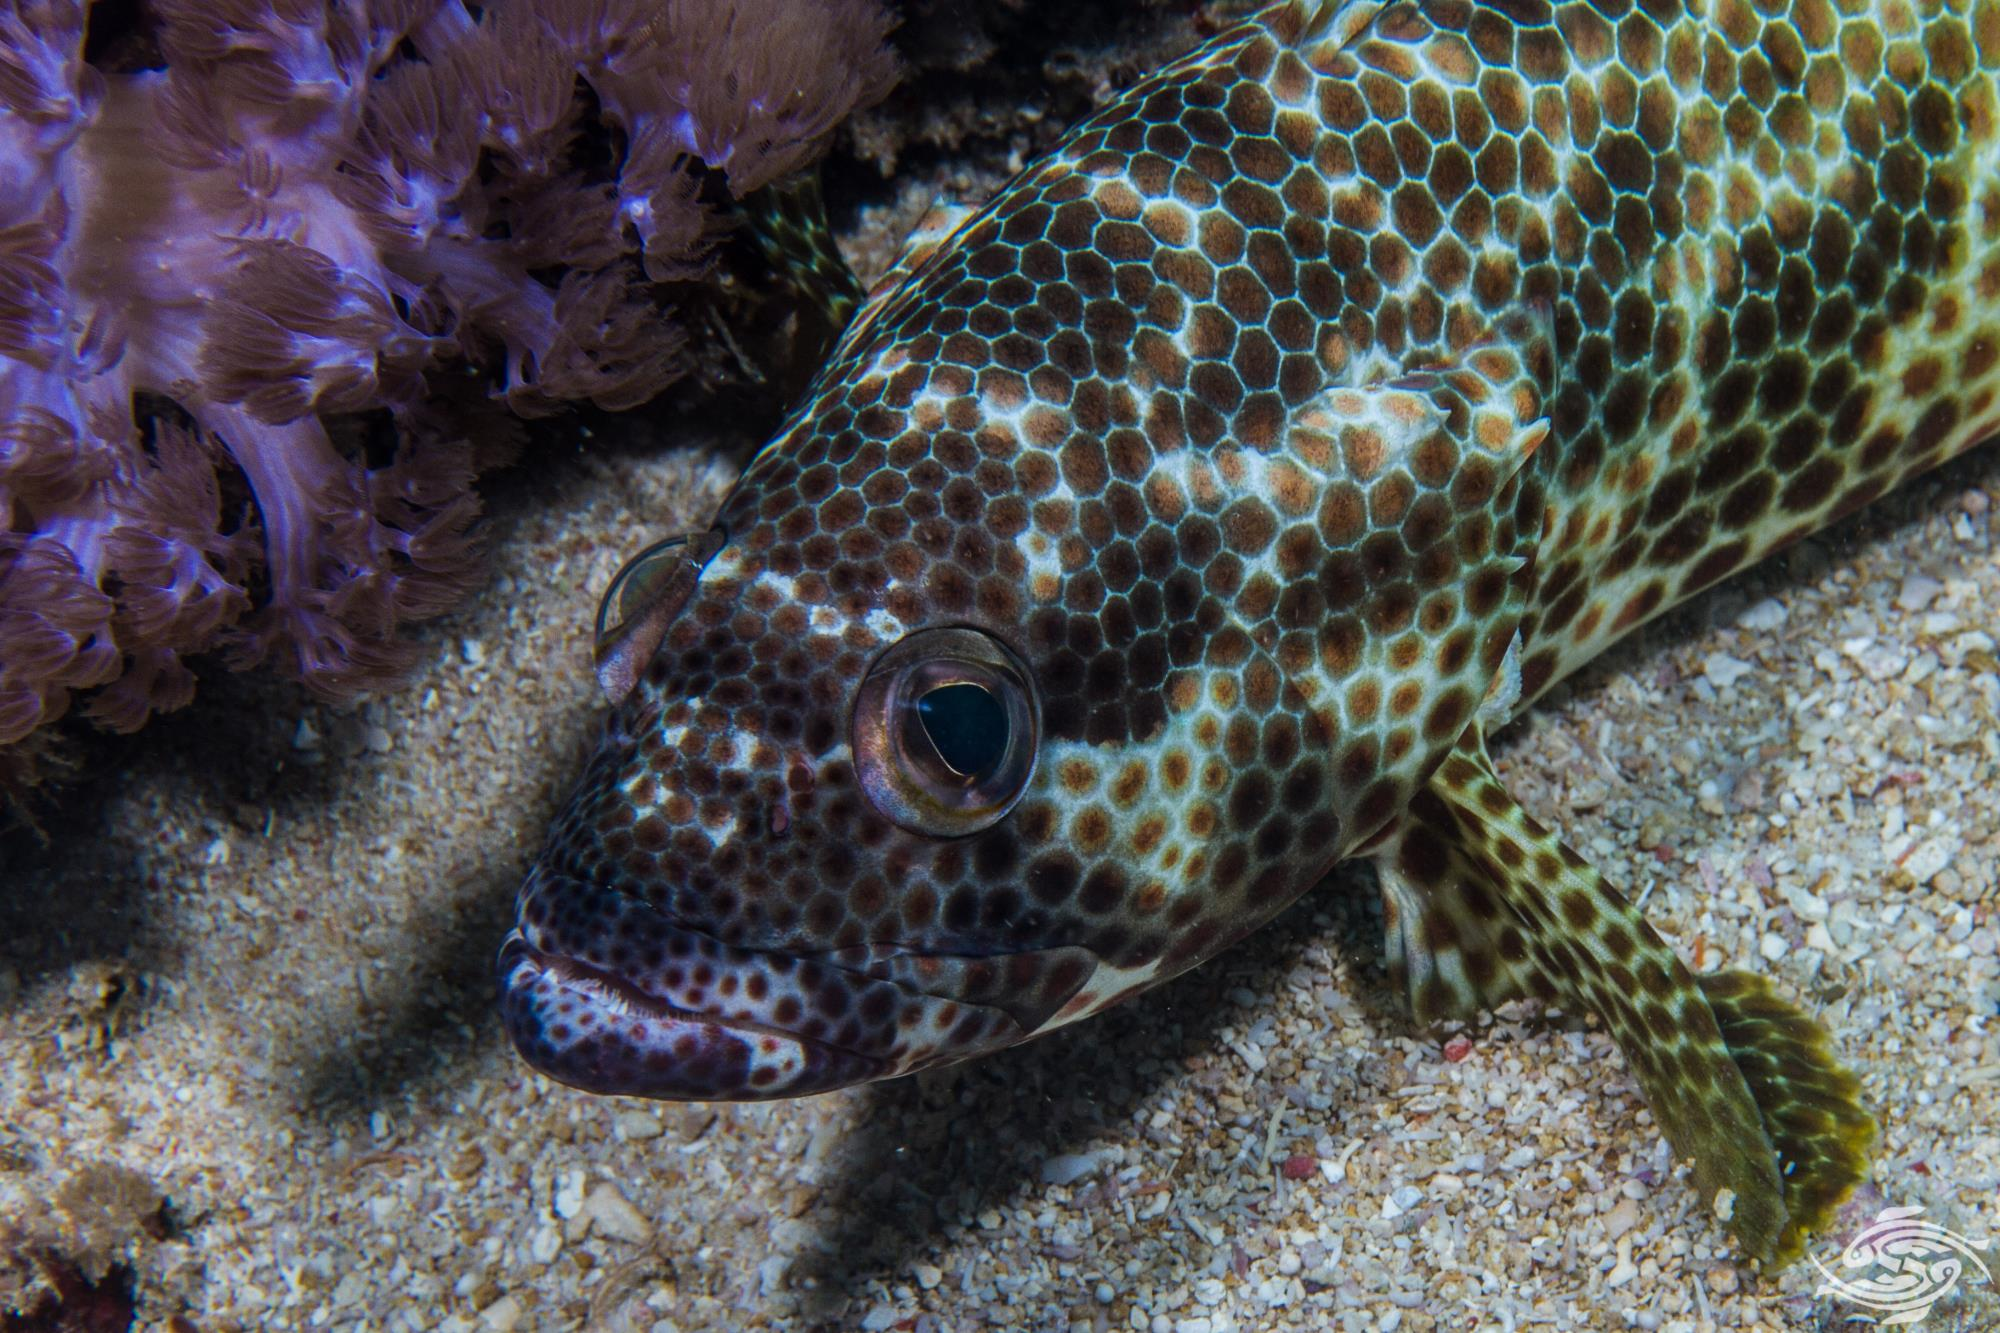 Four saddle grouper, Epinephelus spilotoceps